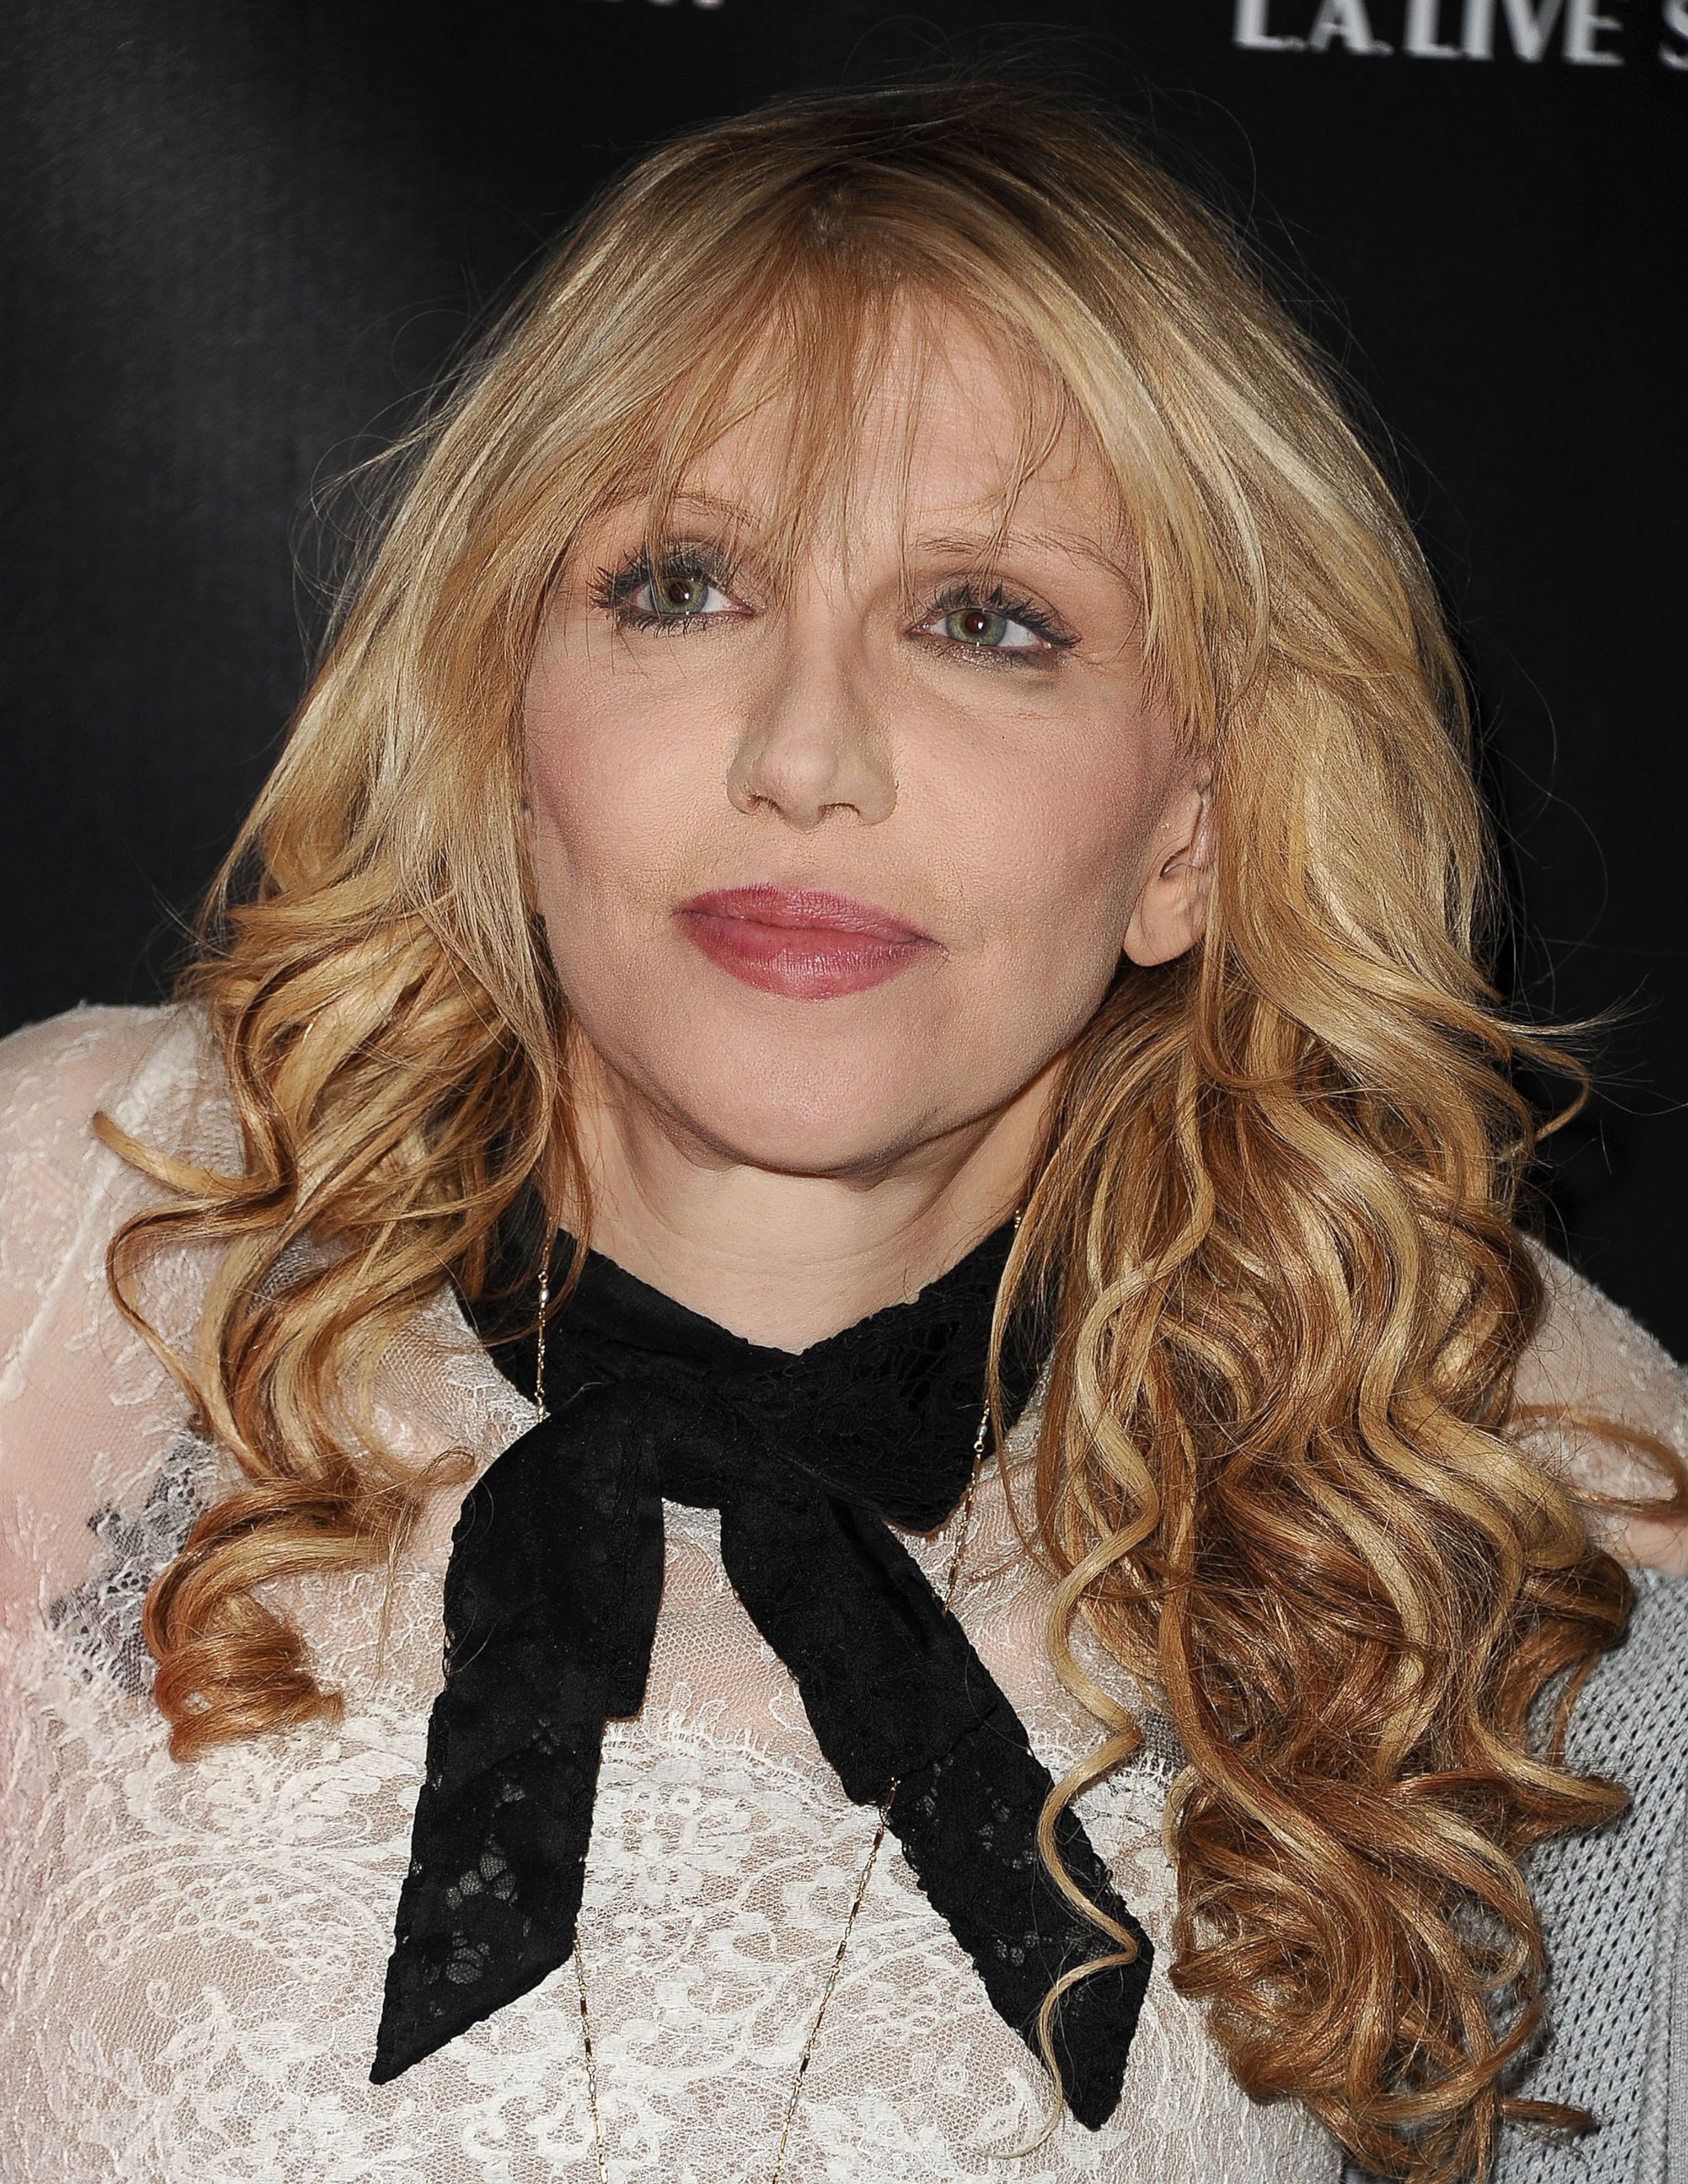 Courtney Love nudes (51 fotos), photos Ass, YouTube, cleavage 2019